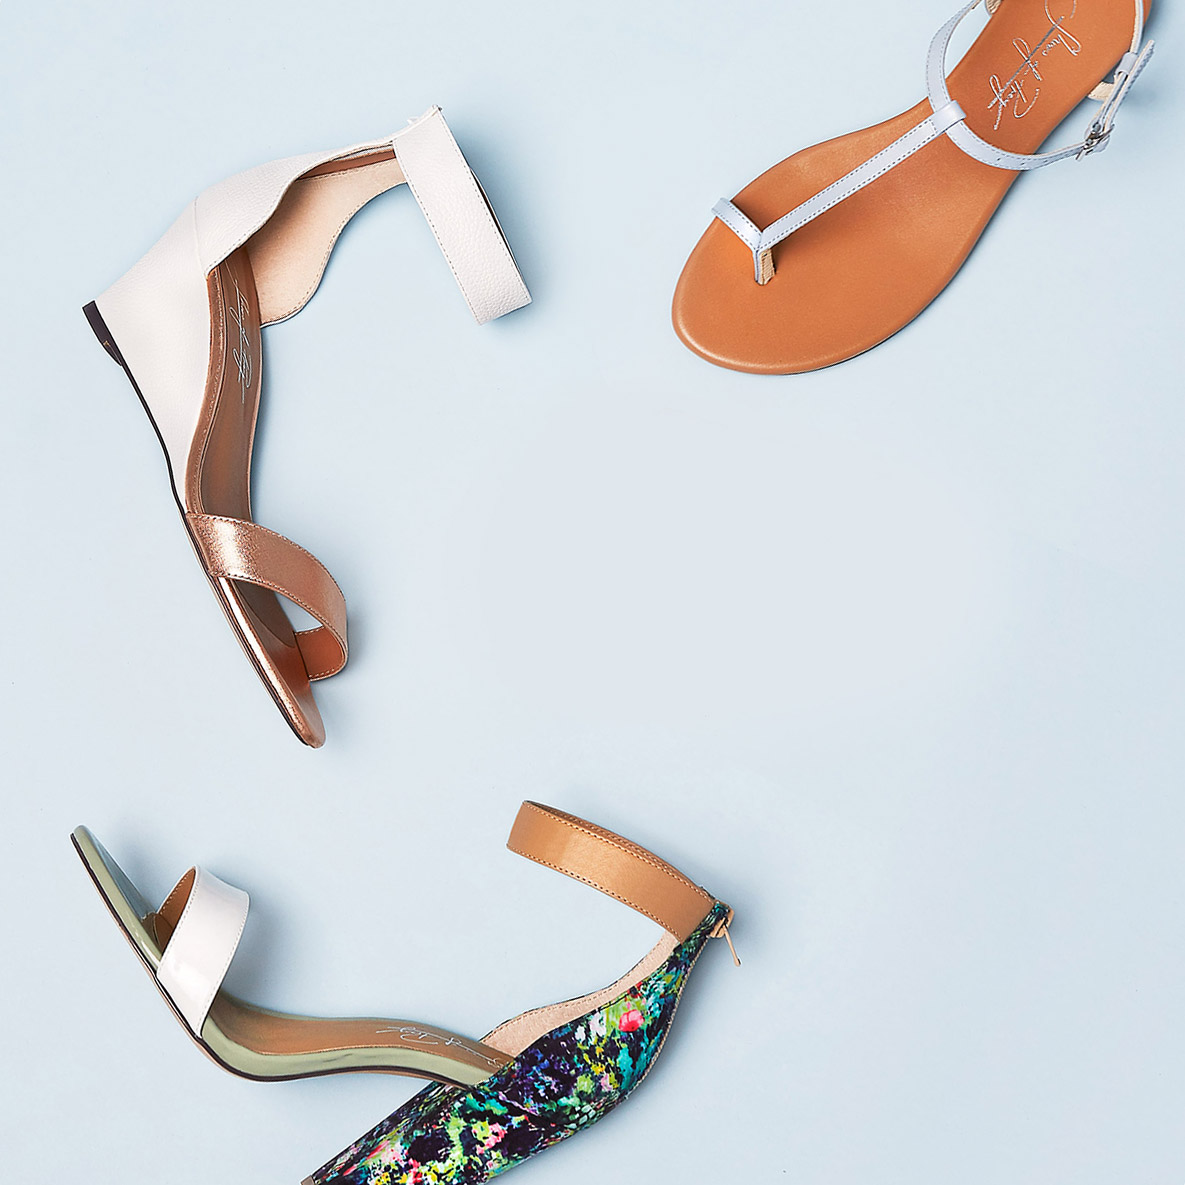 3 sandals to see you through the season